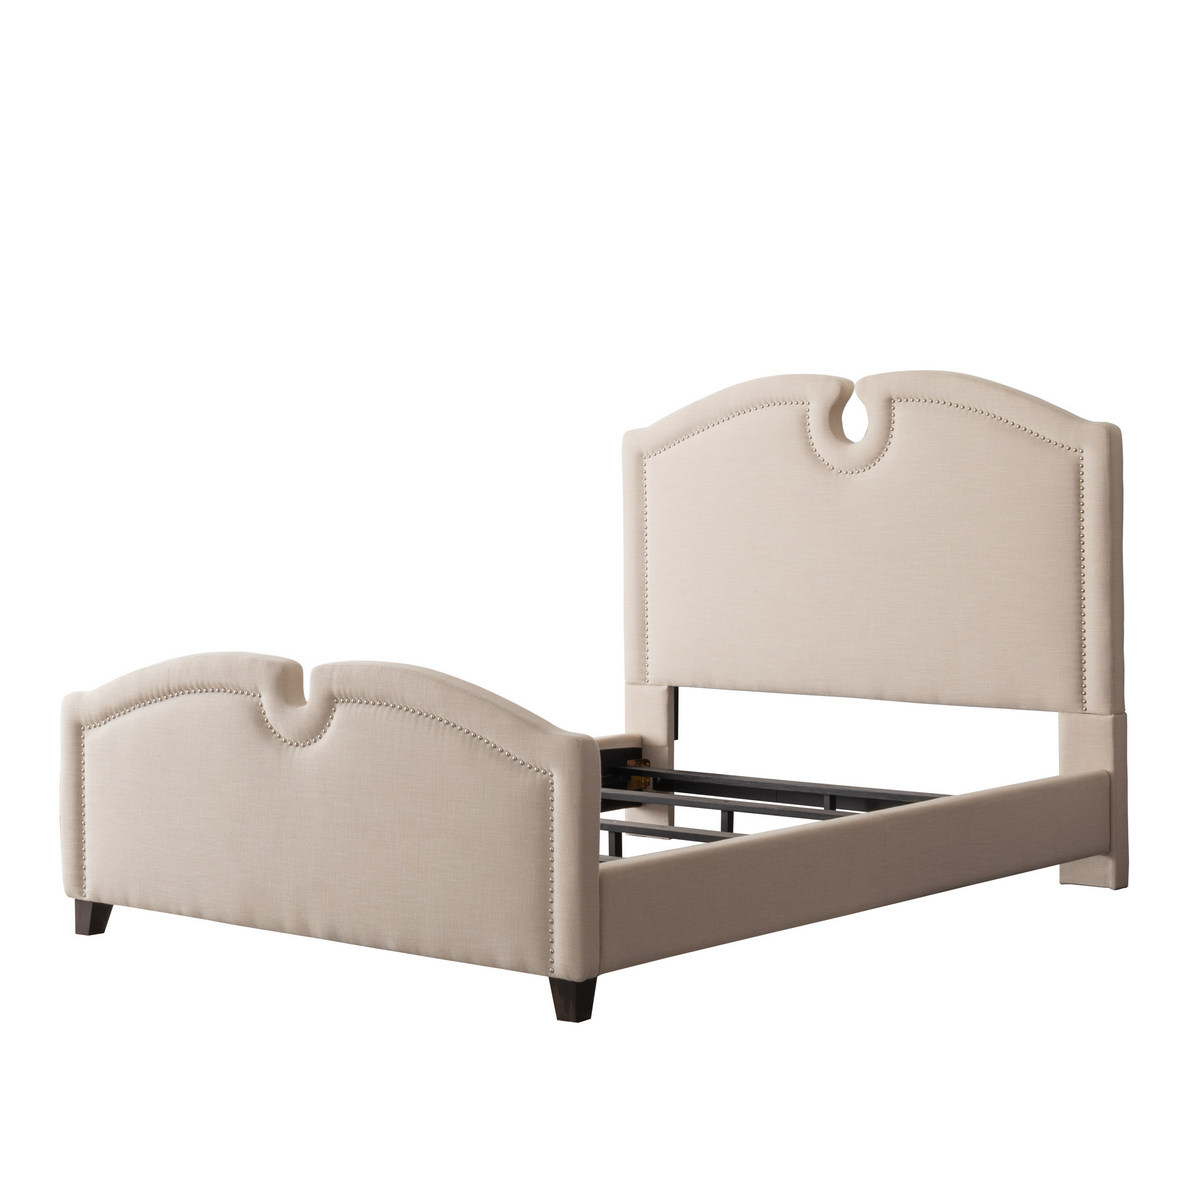 Corliving Bed Top Curved Twin Single